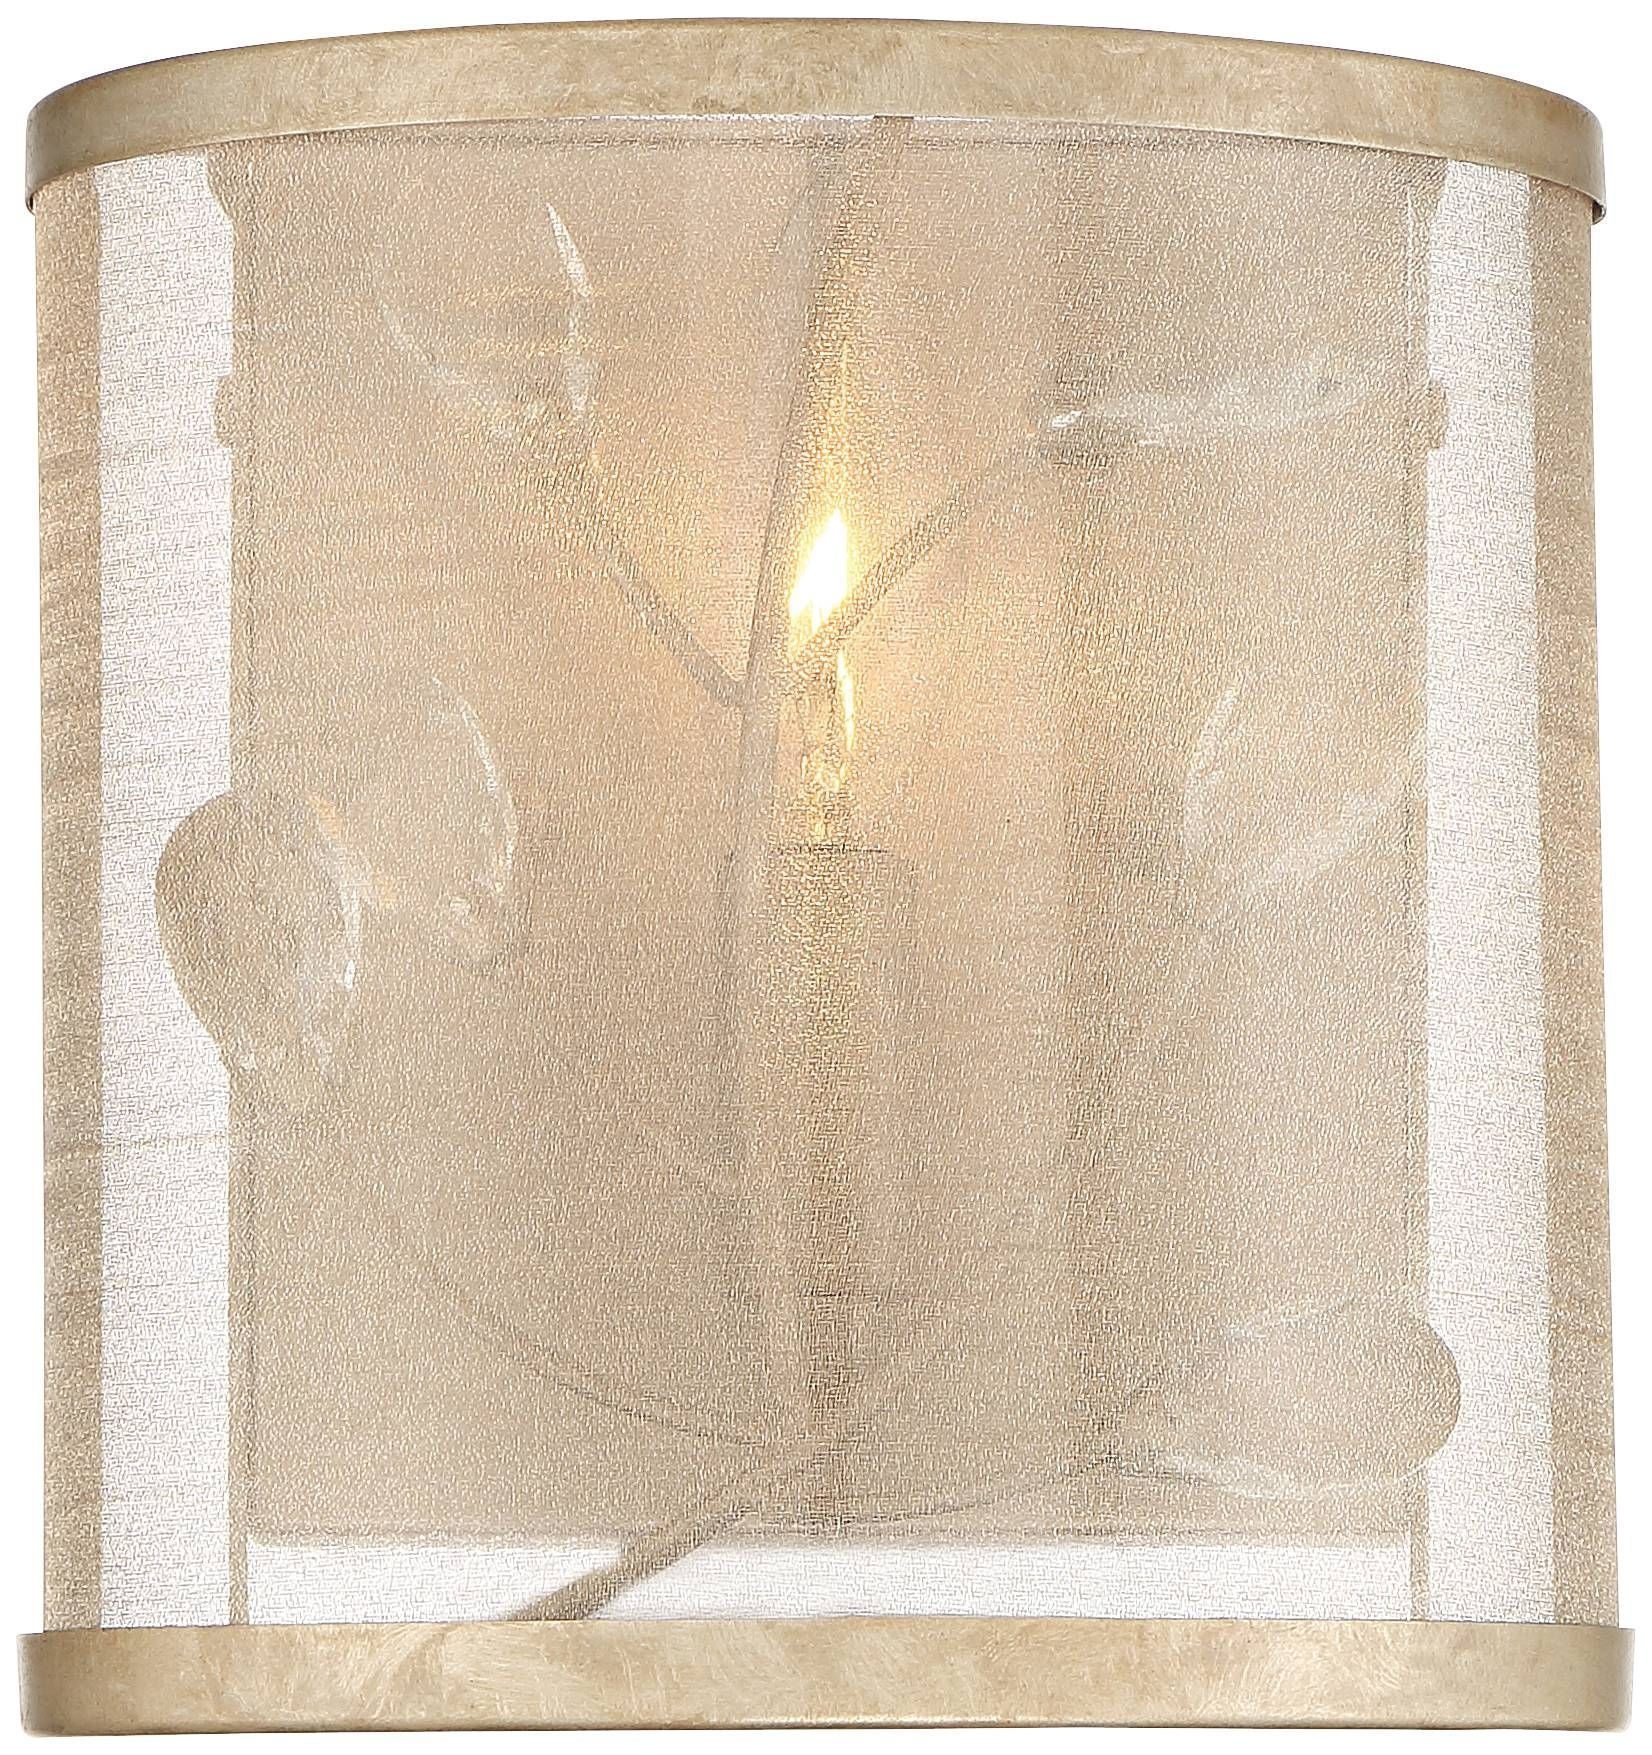 Bath wall sconces small wall sconces pinterest wall sconces